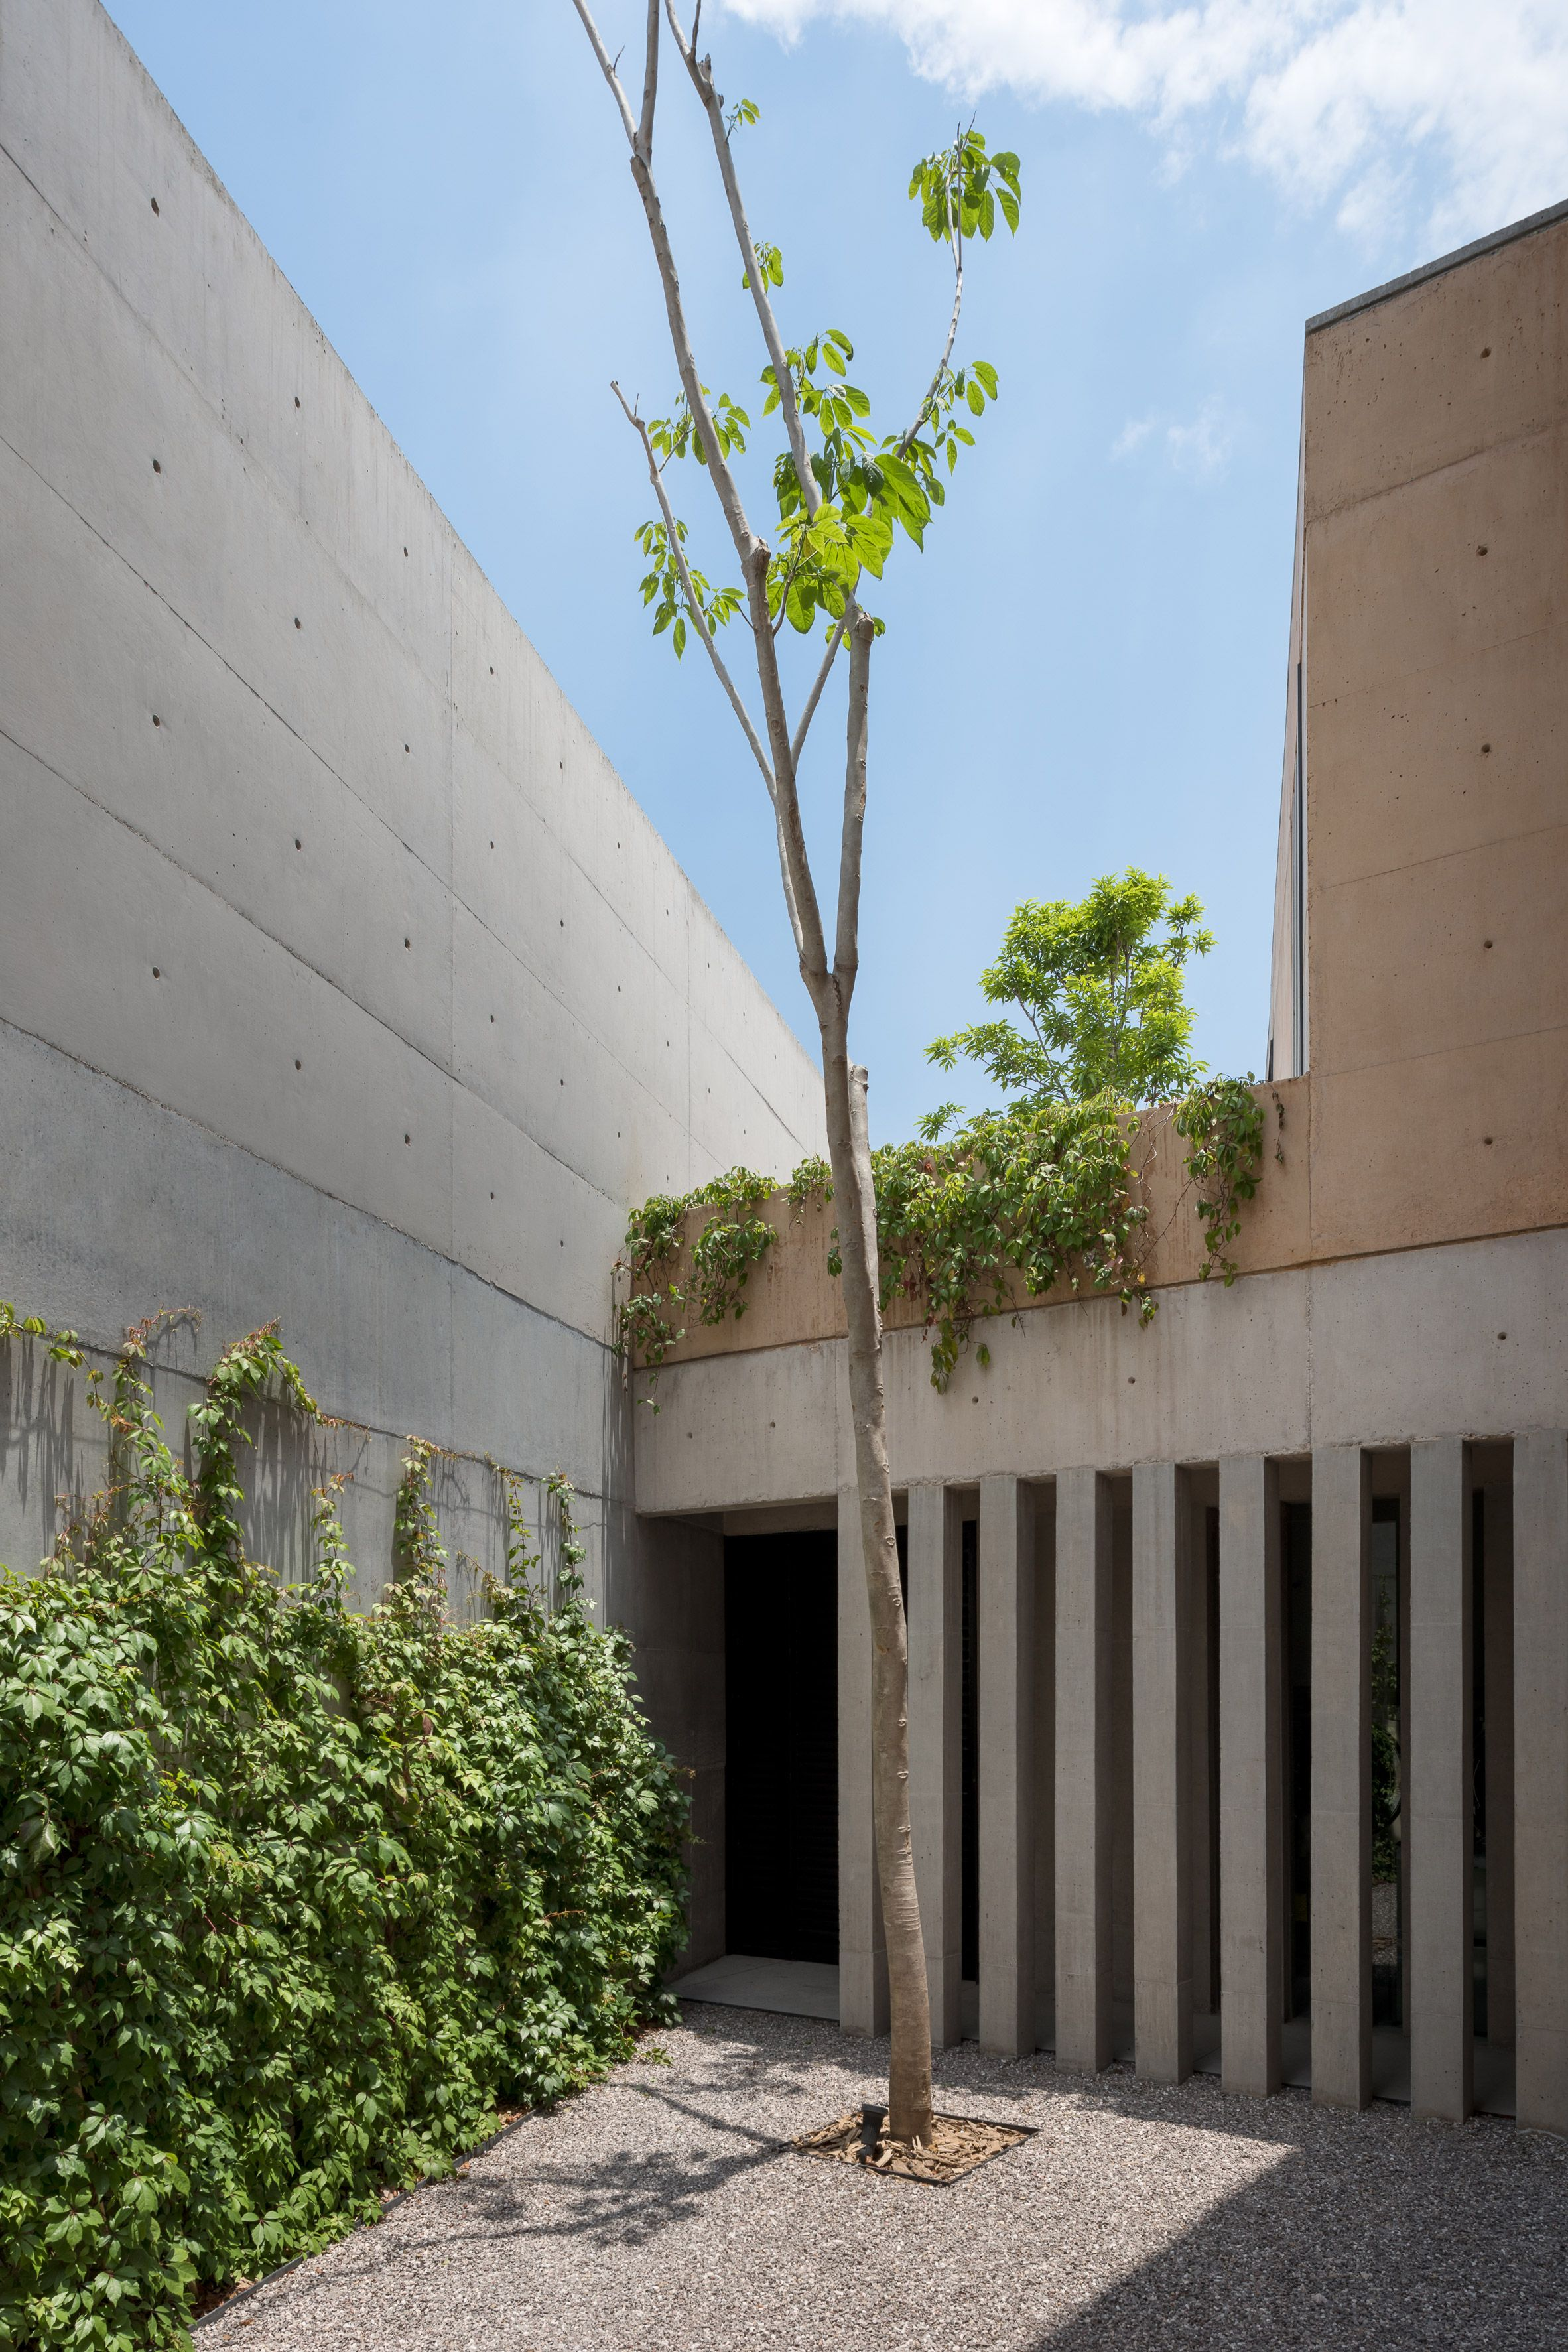 Earthy Concrete Walls Based On Warm Tones Of Sunset Form Casa Moulat In Mexico Architecture Concrete Wall Residential Architecture